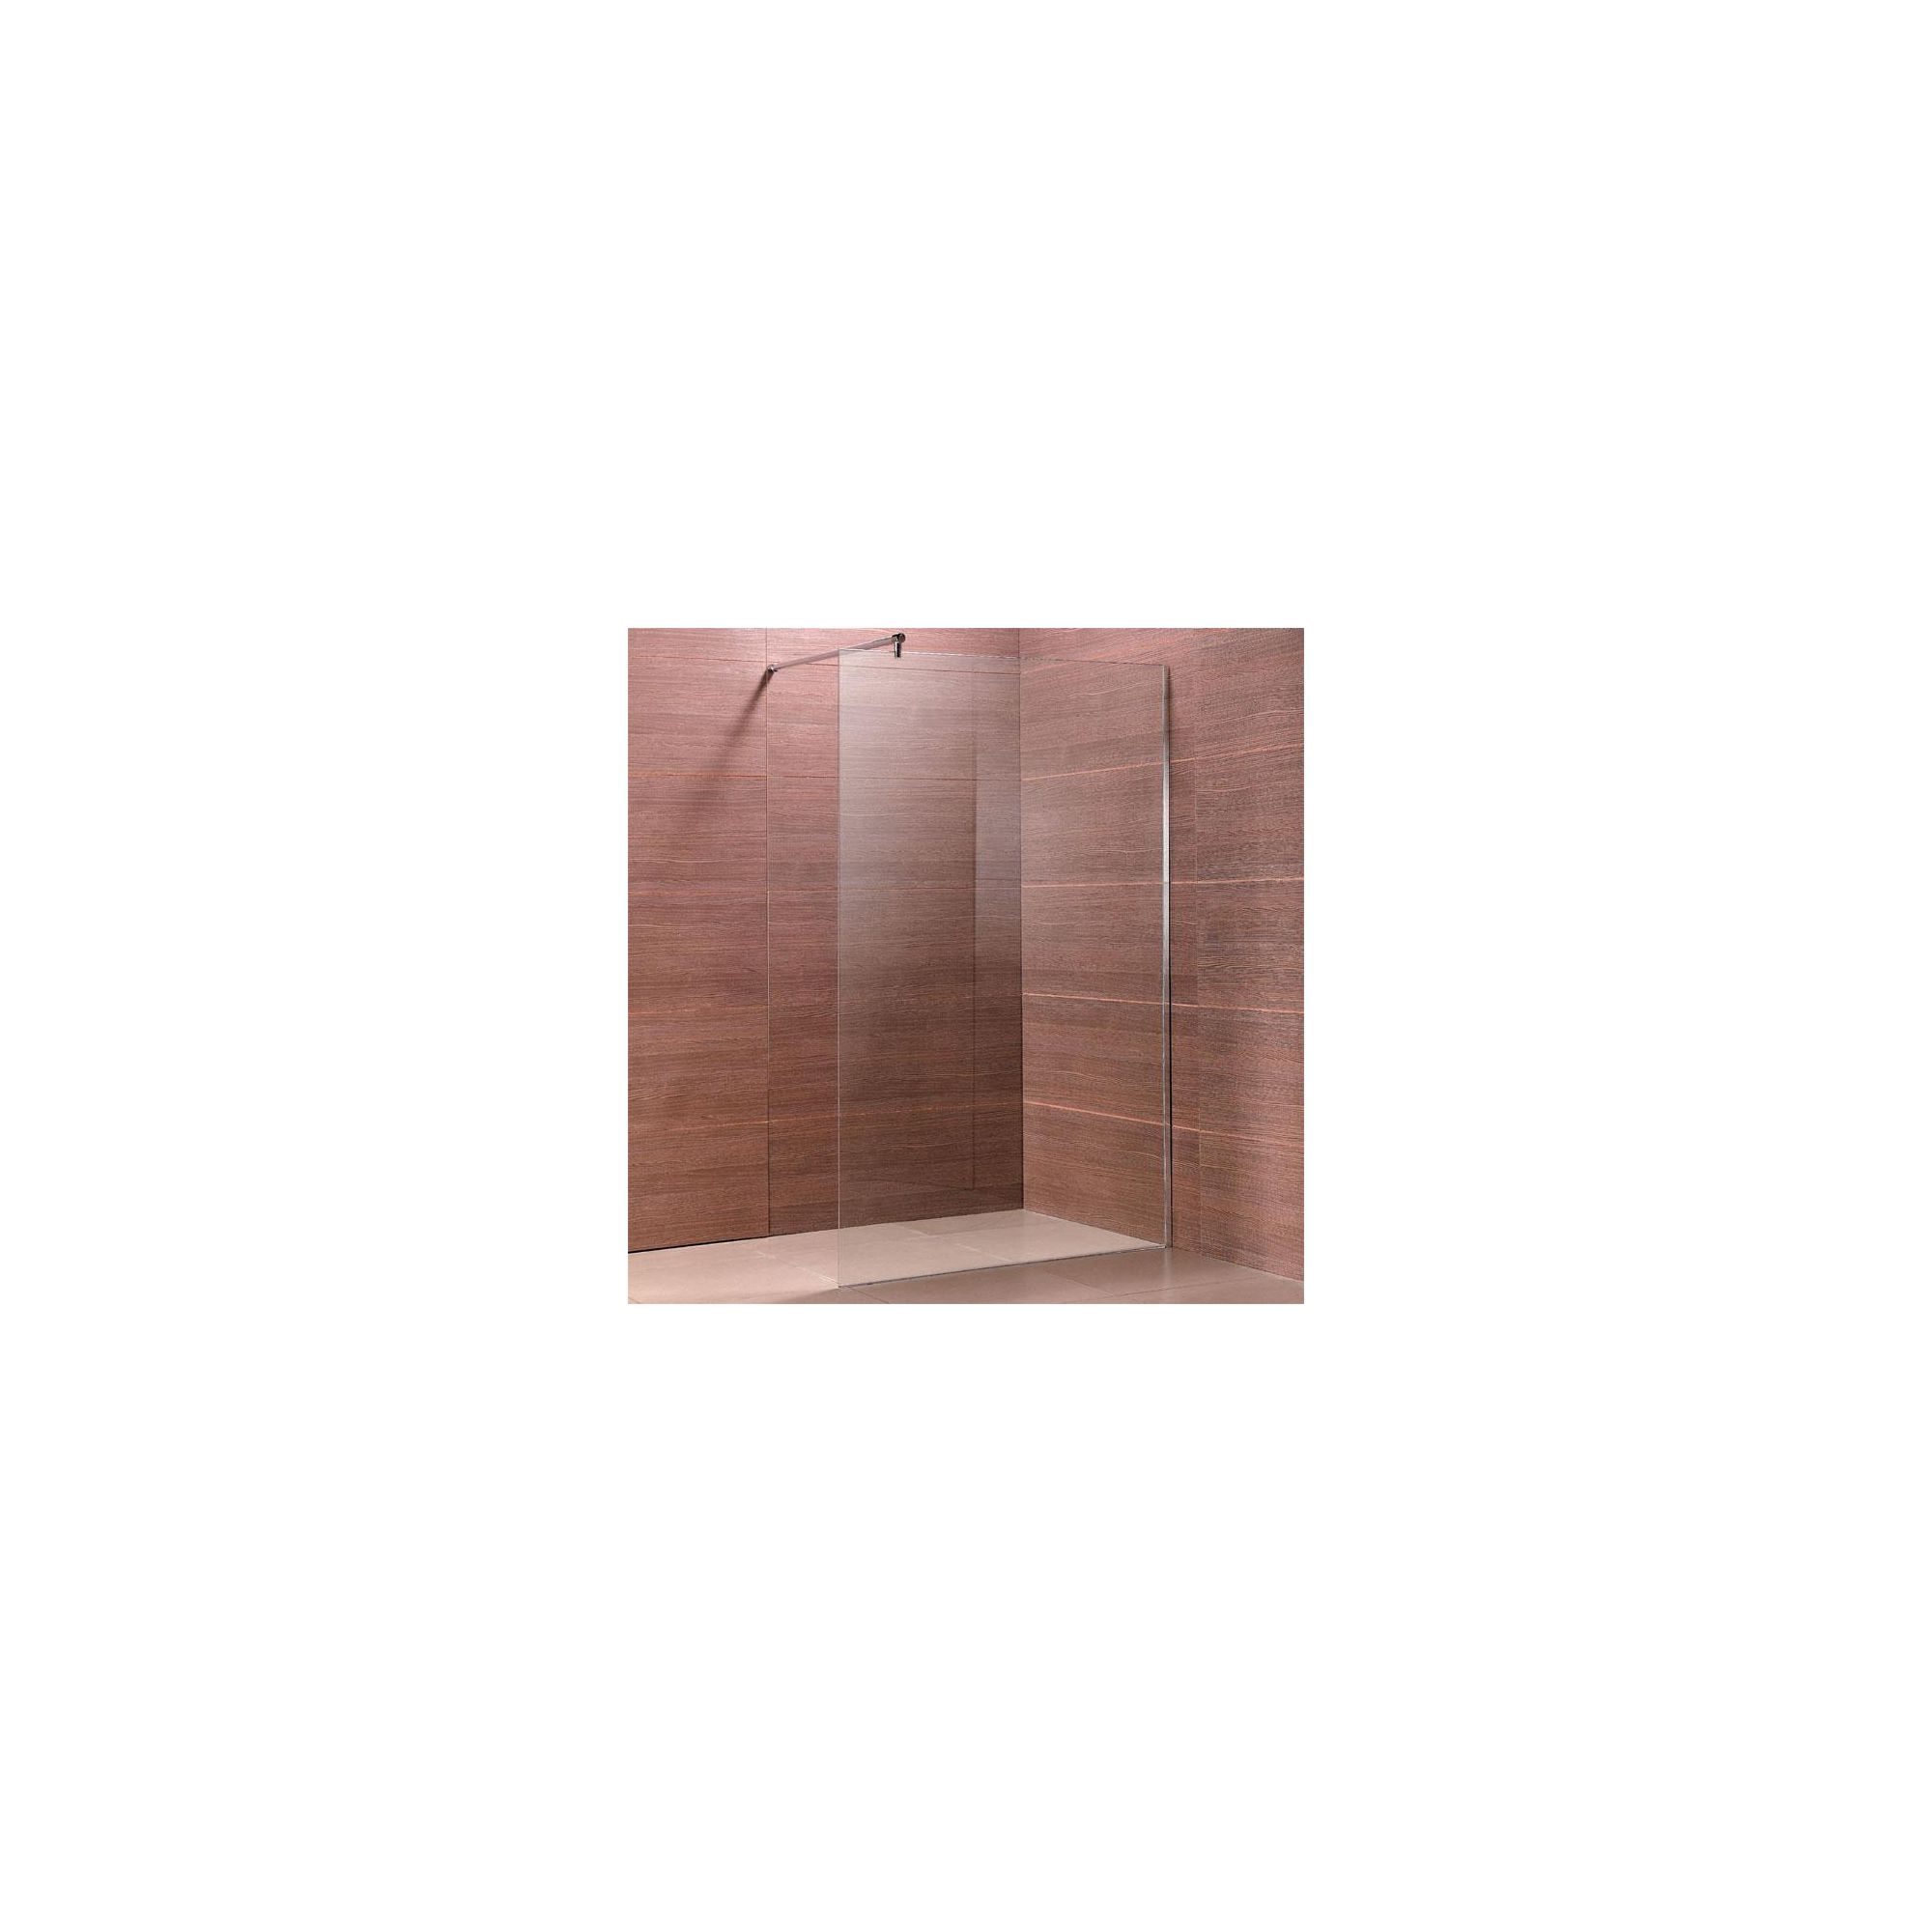 Duchy Premium Wet Room Glass Shower Panel, 1200mm x 800mm, 8mm Glass, Low Profile Tray at Tesco Direct